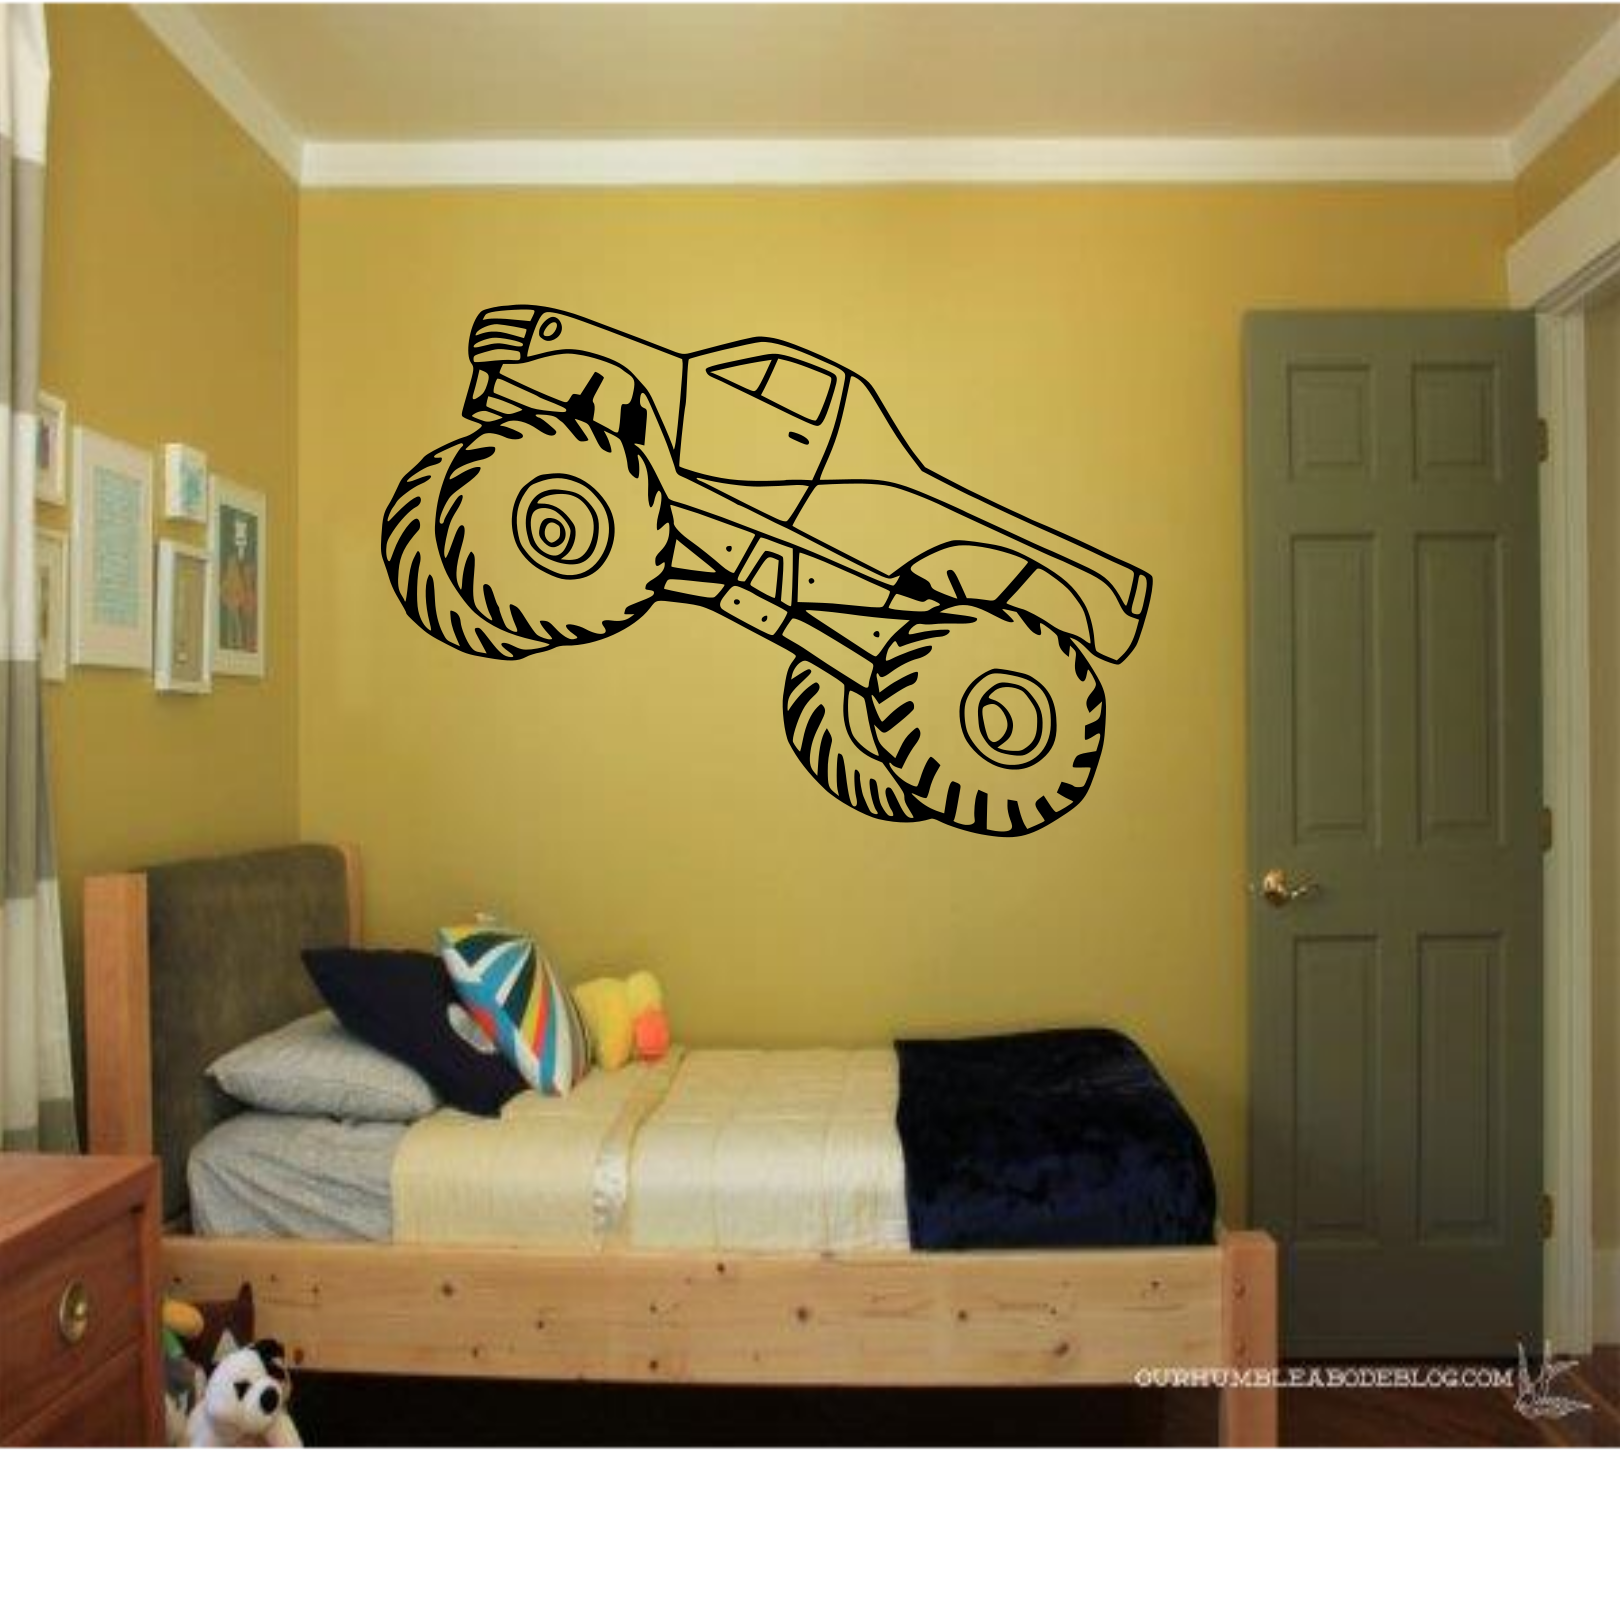 Over 210 Designs Available At Httpswwwetsycomlisting197434733Monster Truck Wall Decal